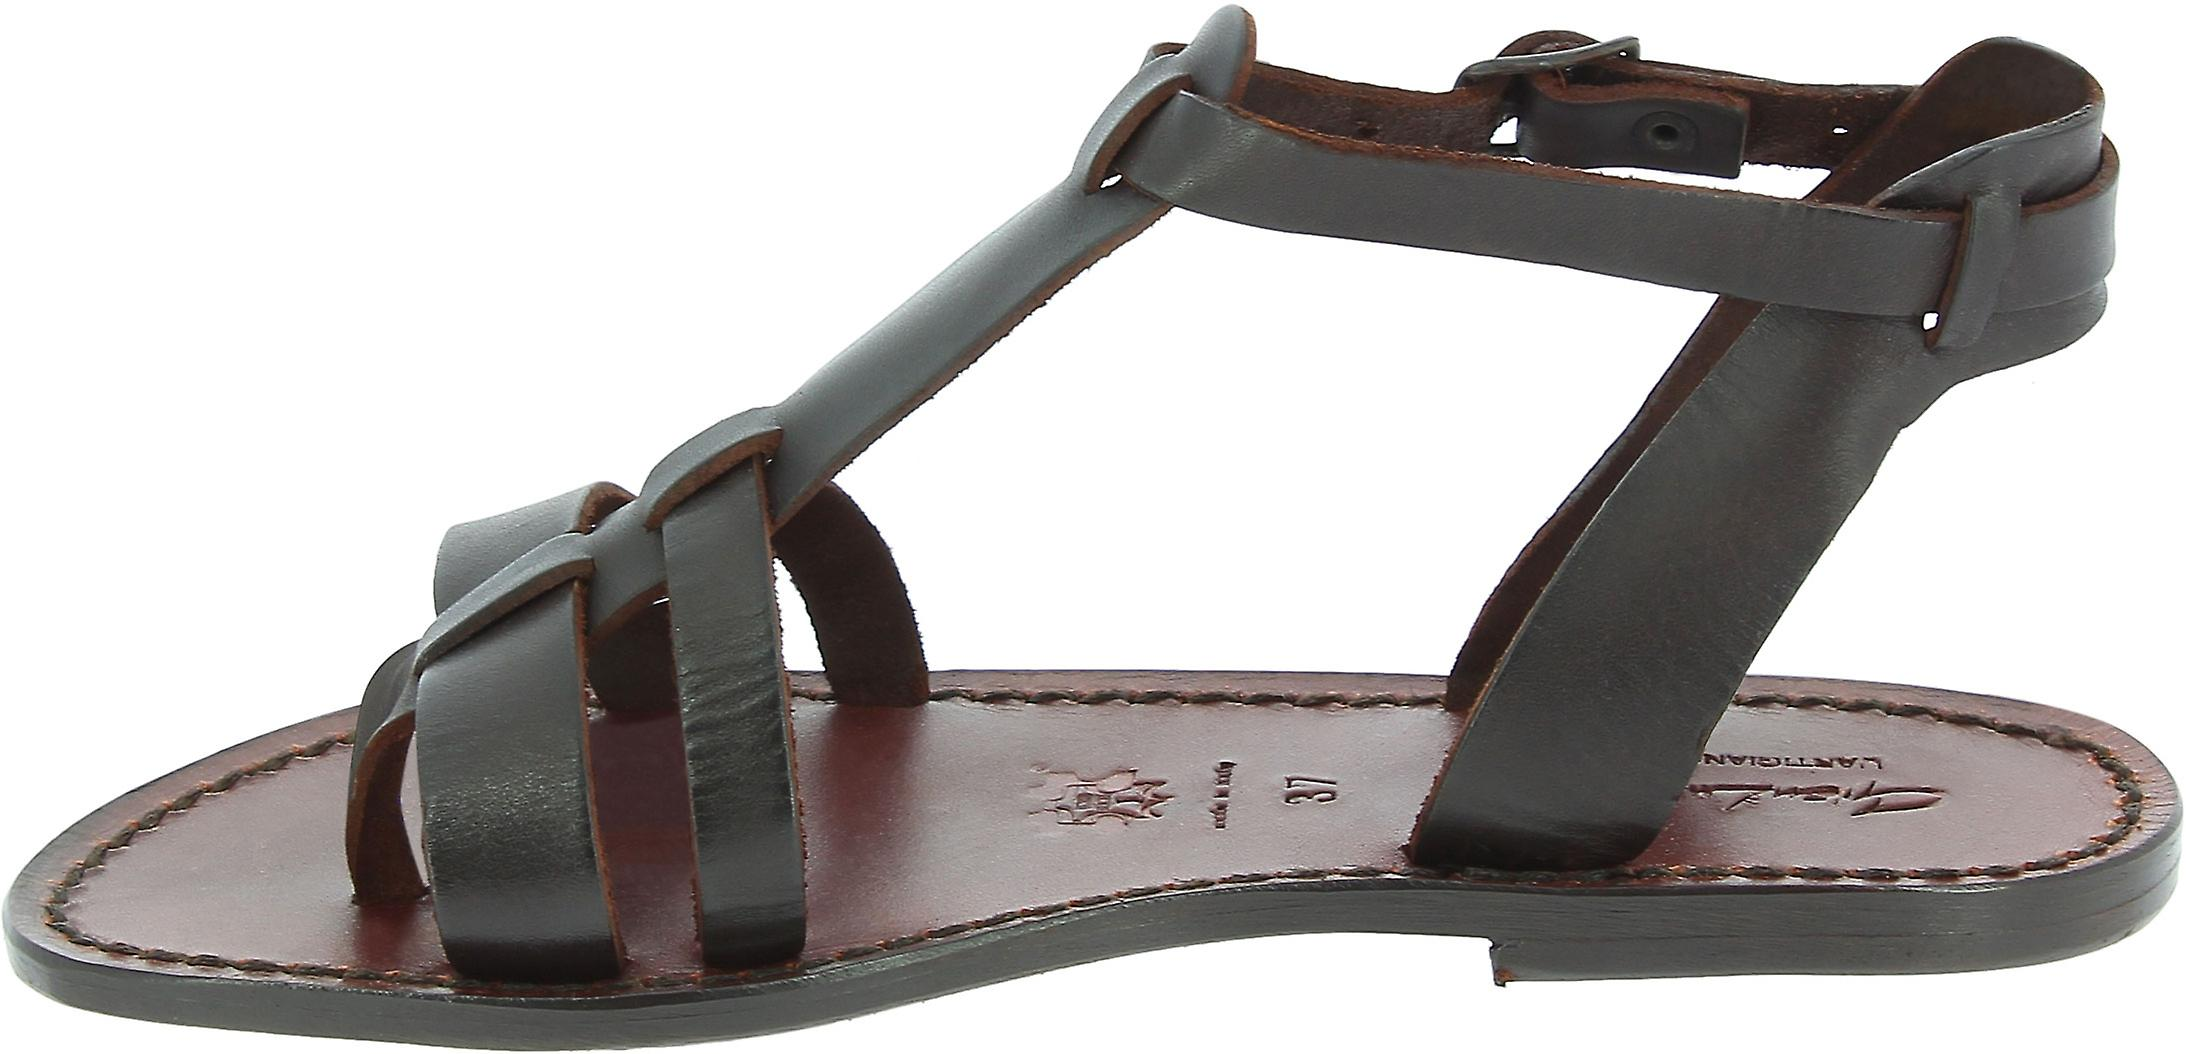 Women's leather flat brown sandals Handmade in Italy NQseG